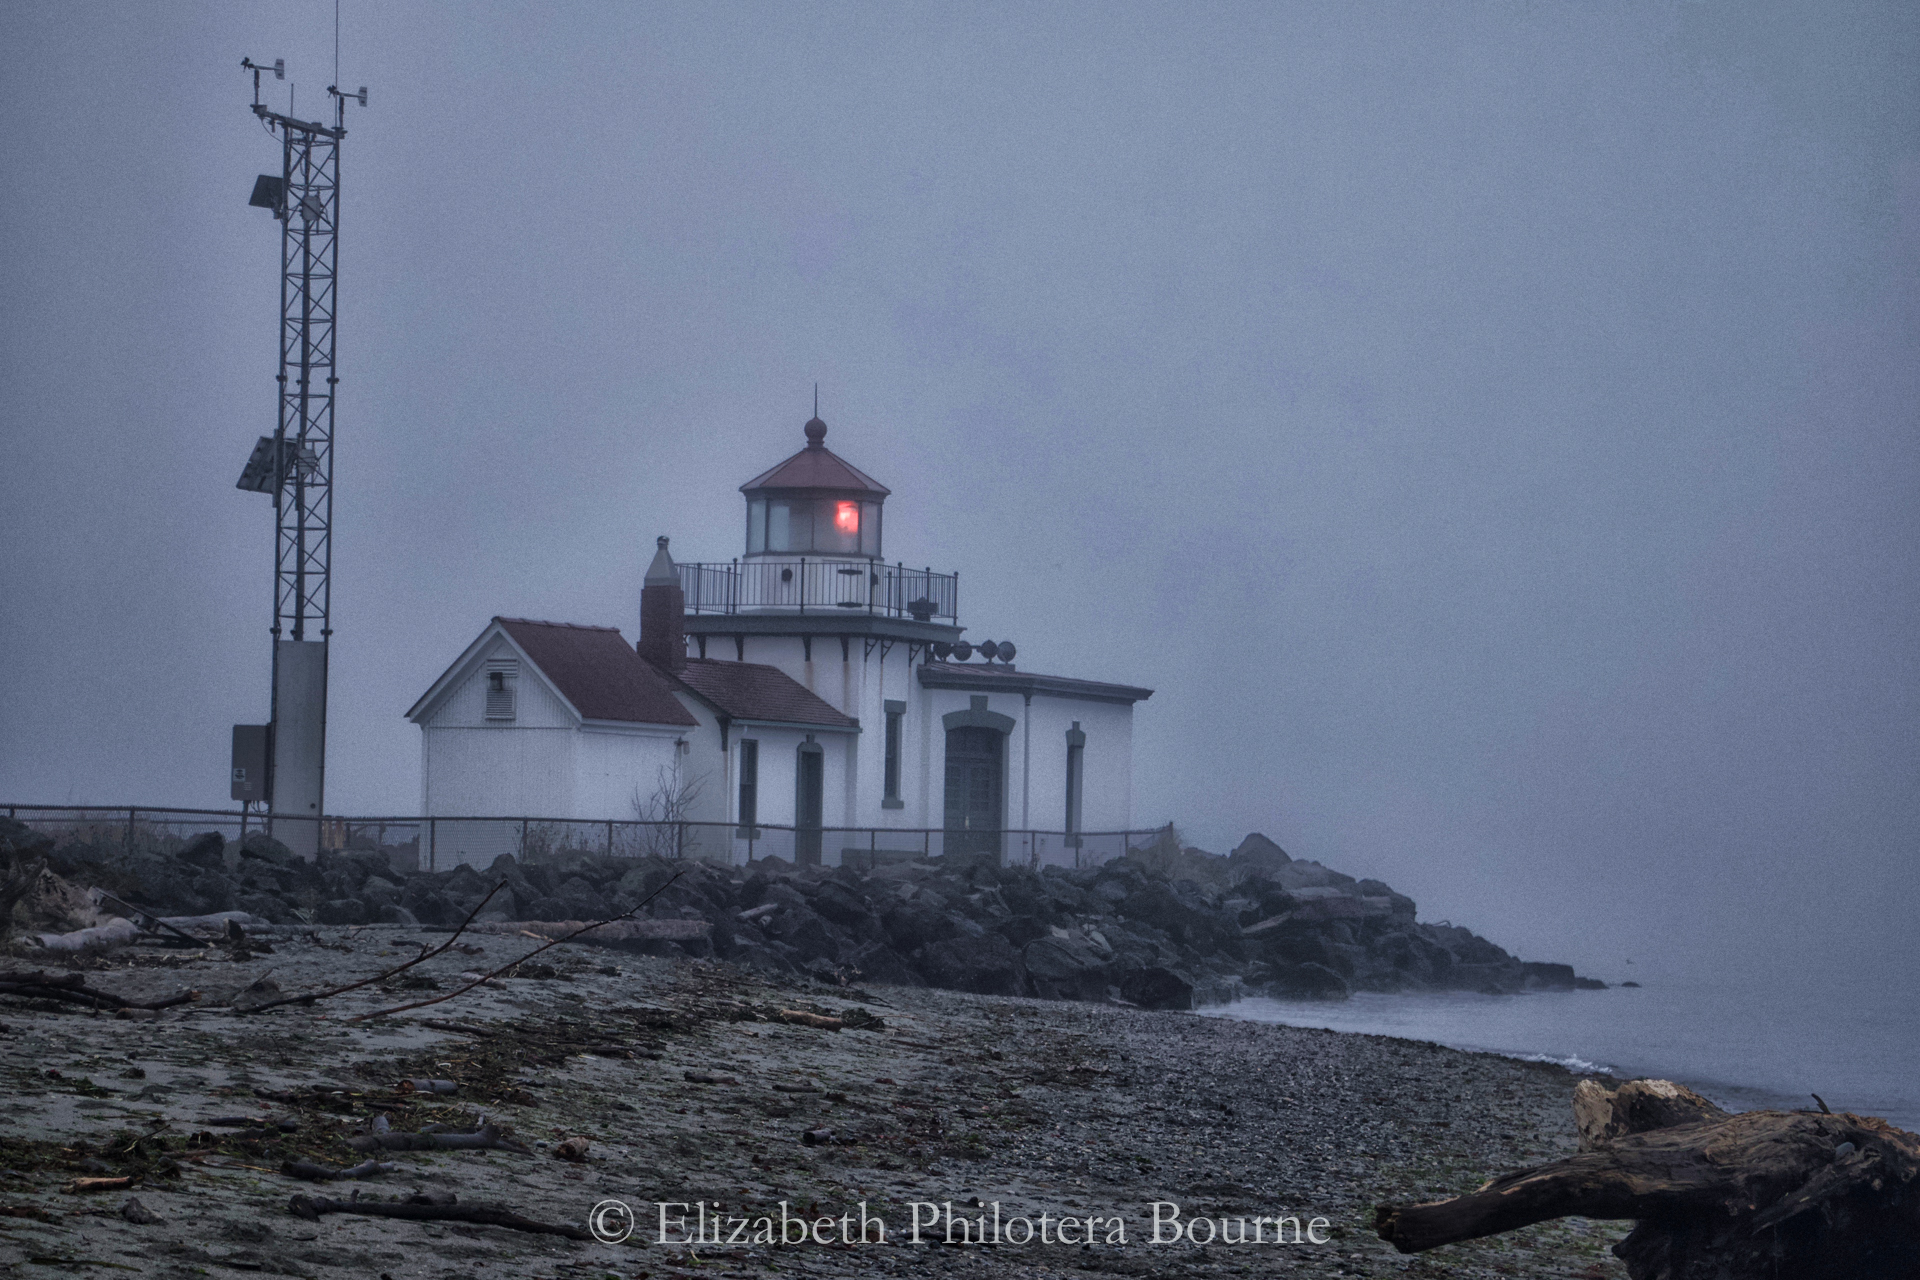 Light house in early morning fog with red light